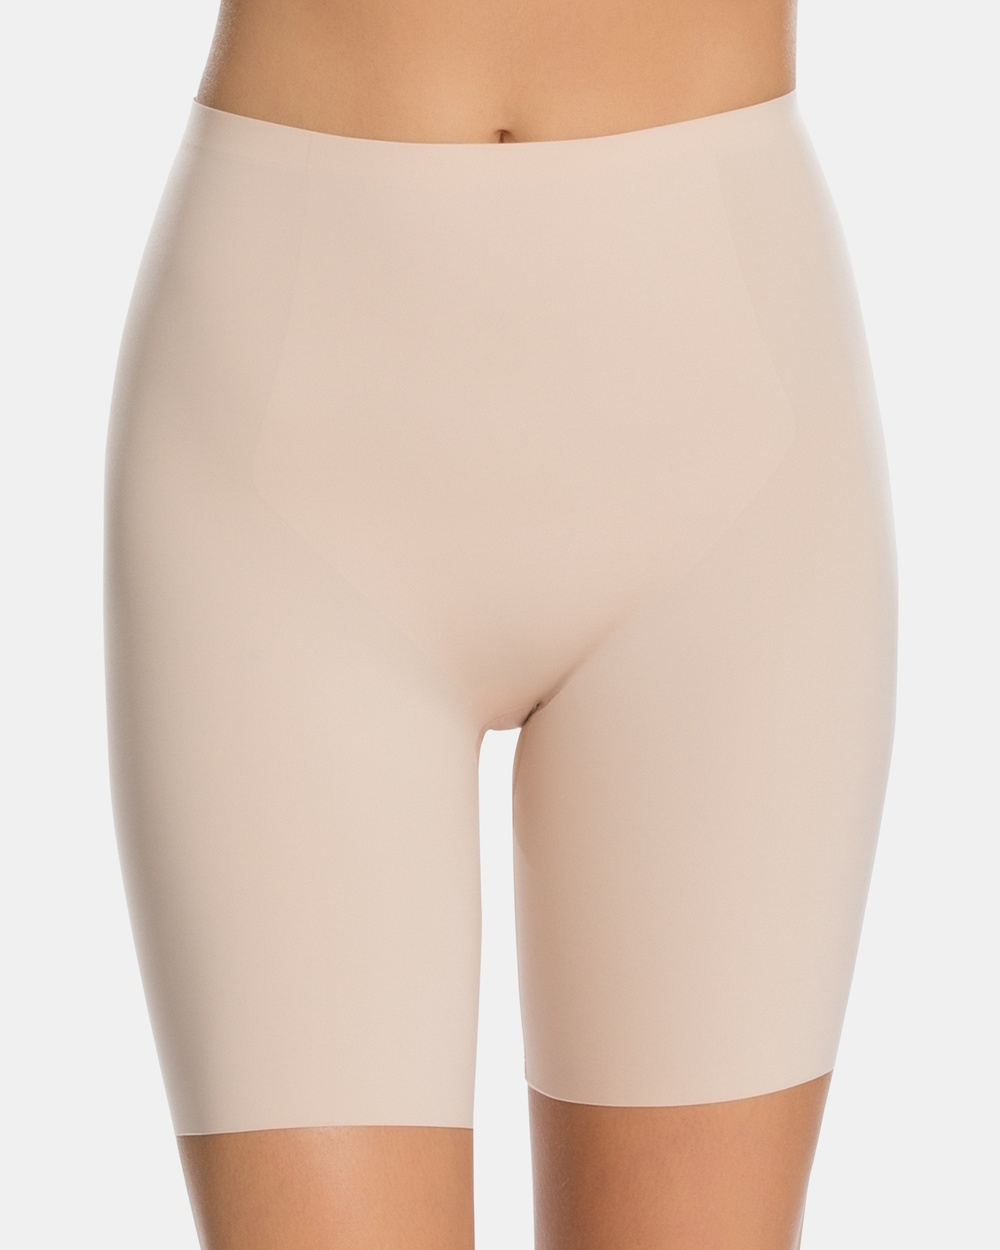 Spanx Thinstincts Mid Thigh Shorts Lingerie Nude Mid-Thigh